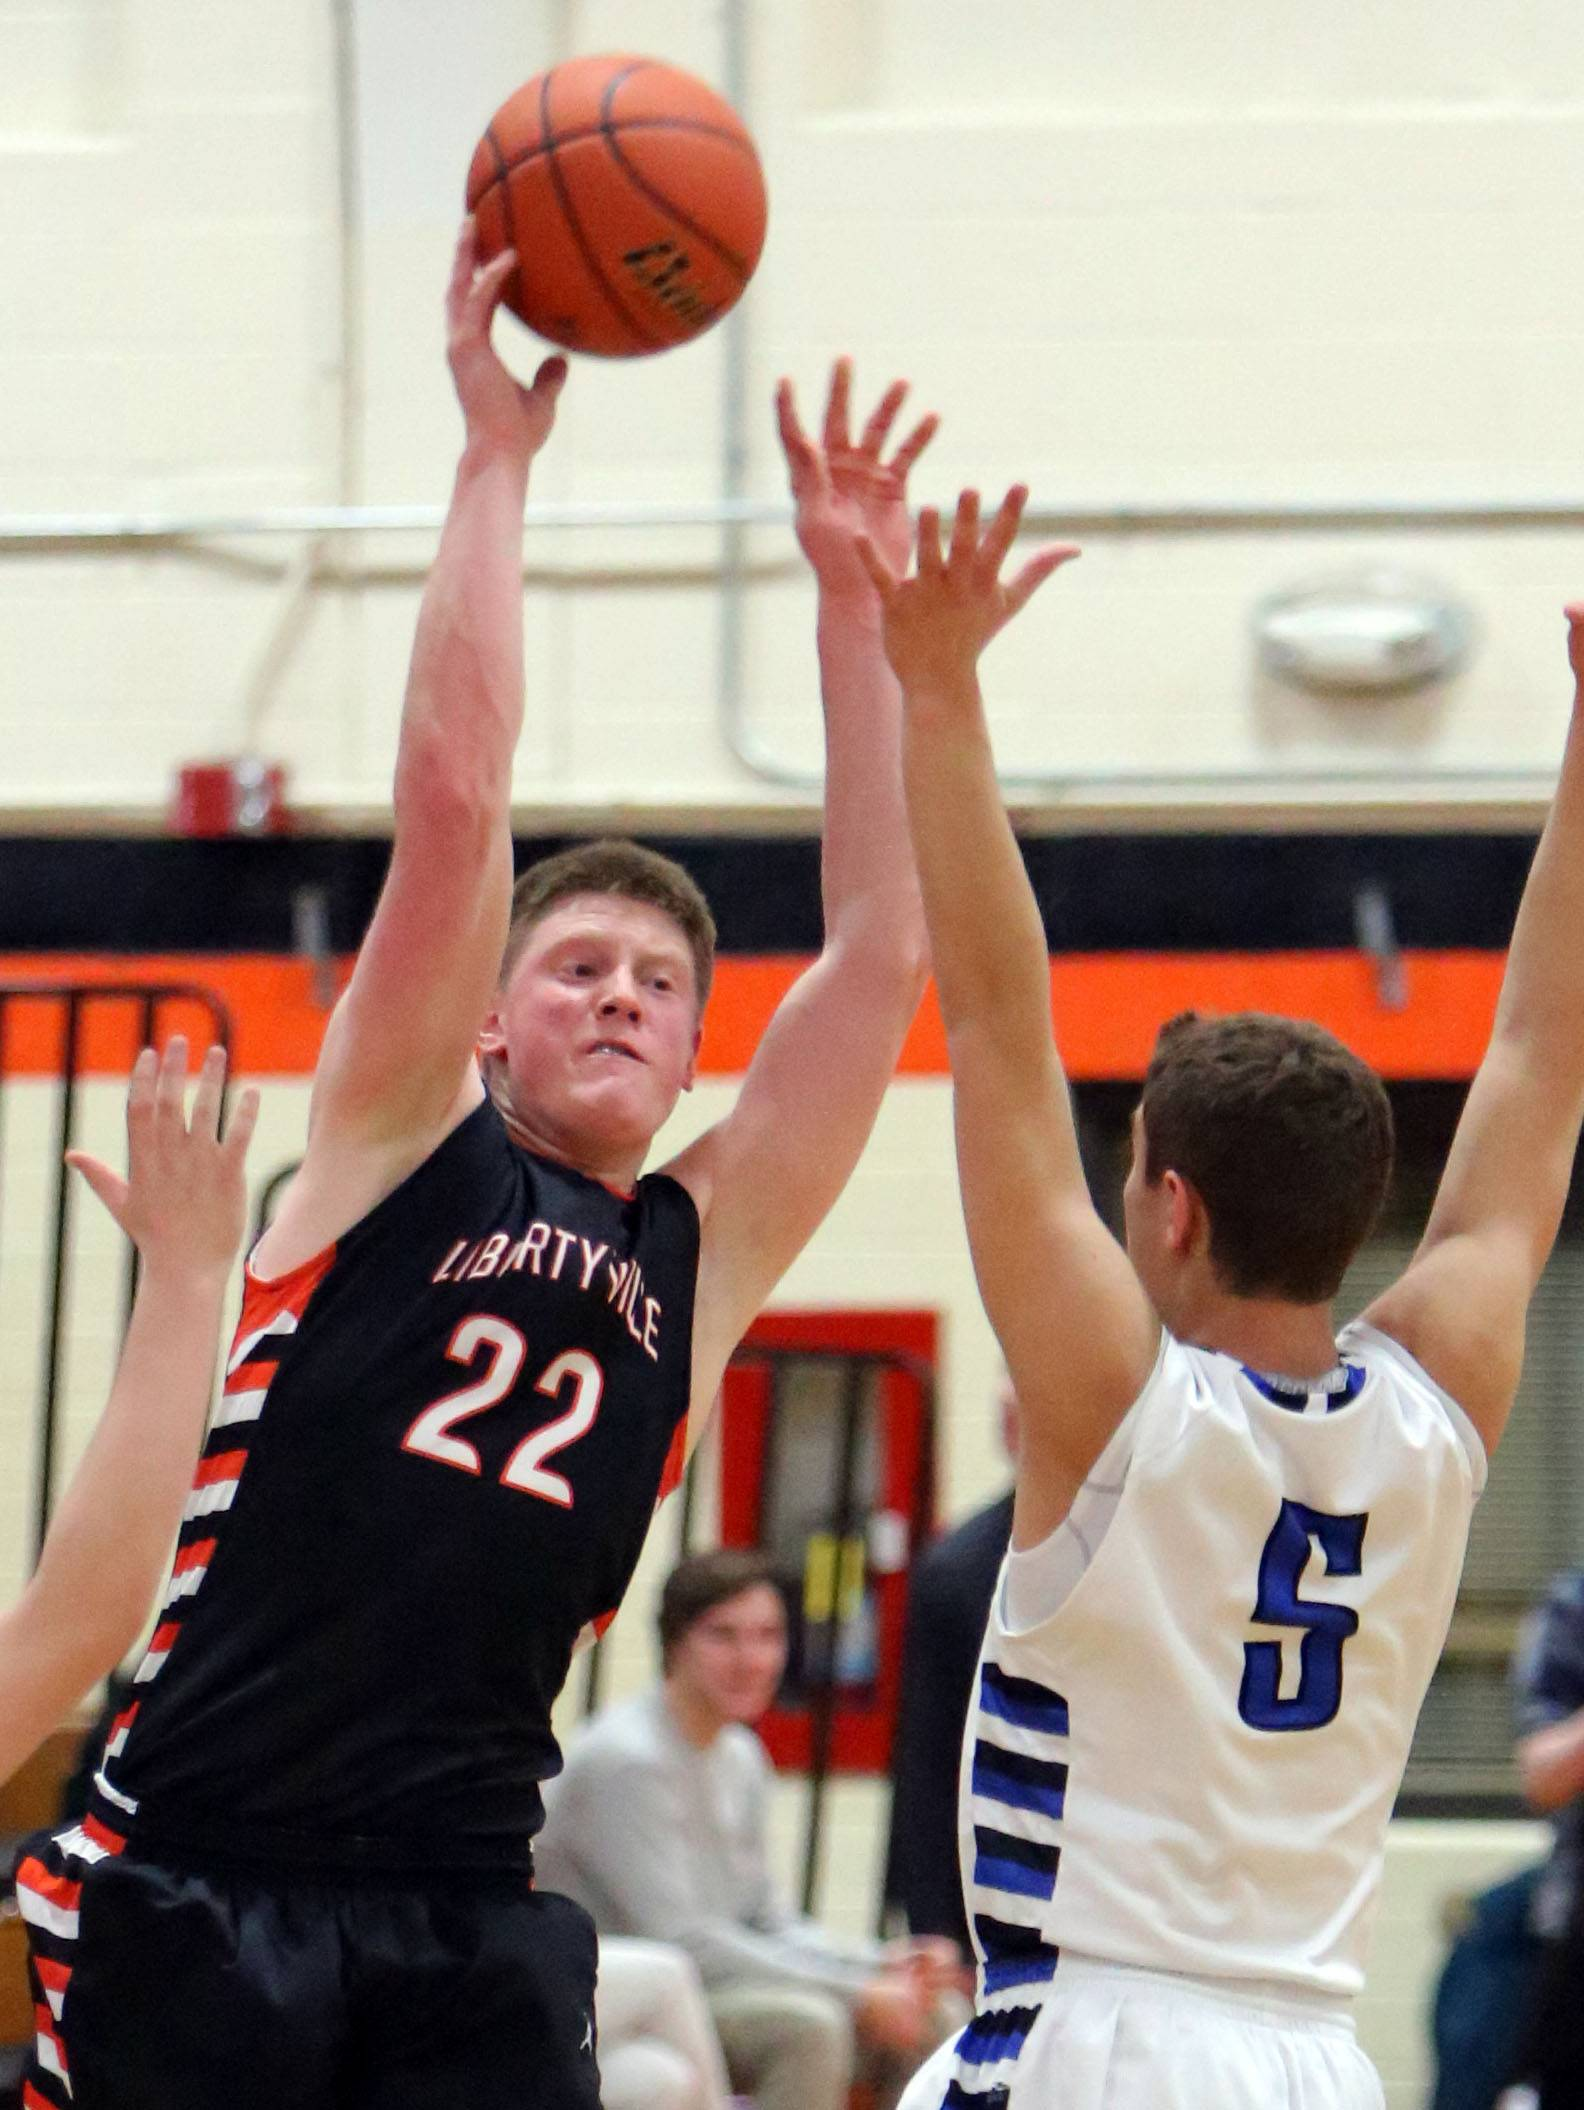 Sachs' big game helps Highland Park sink Libertyville